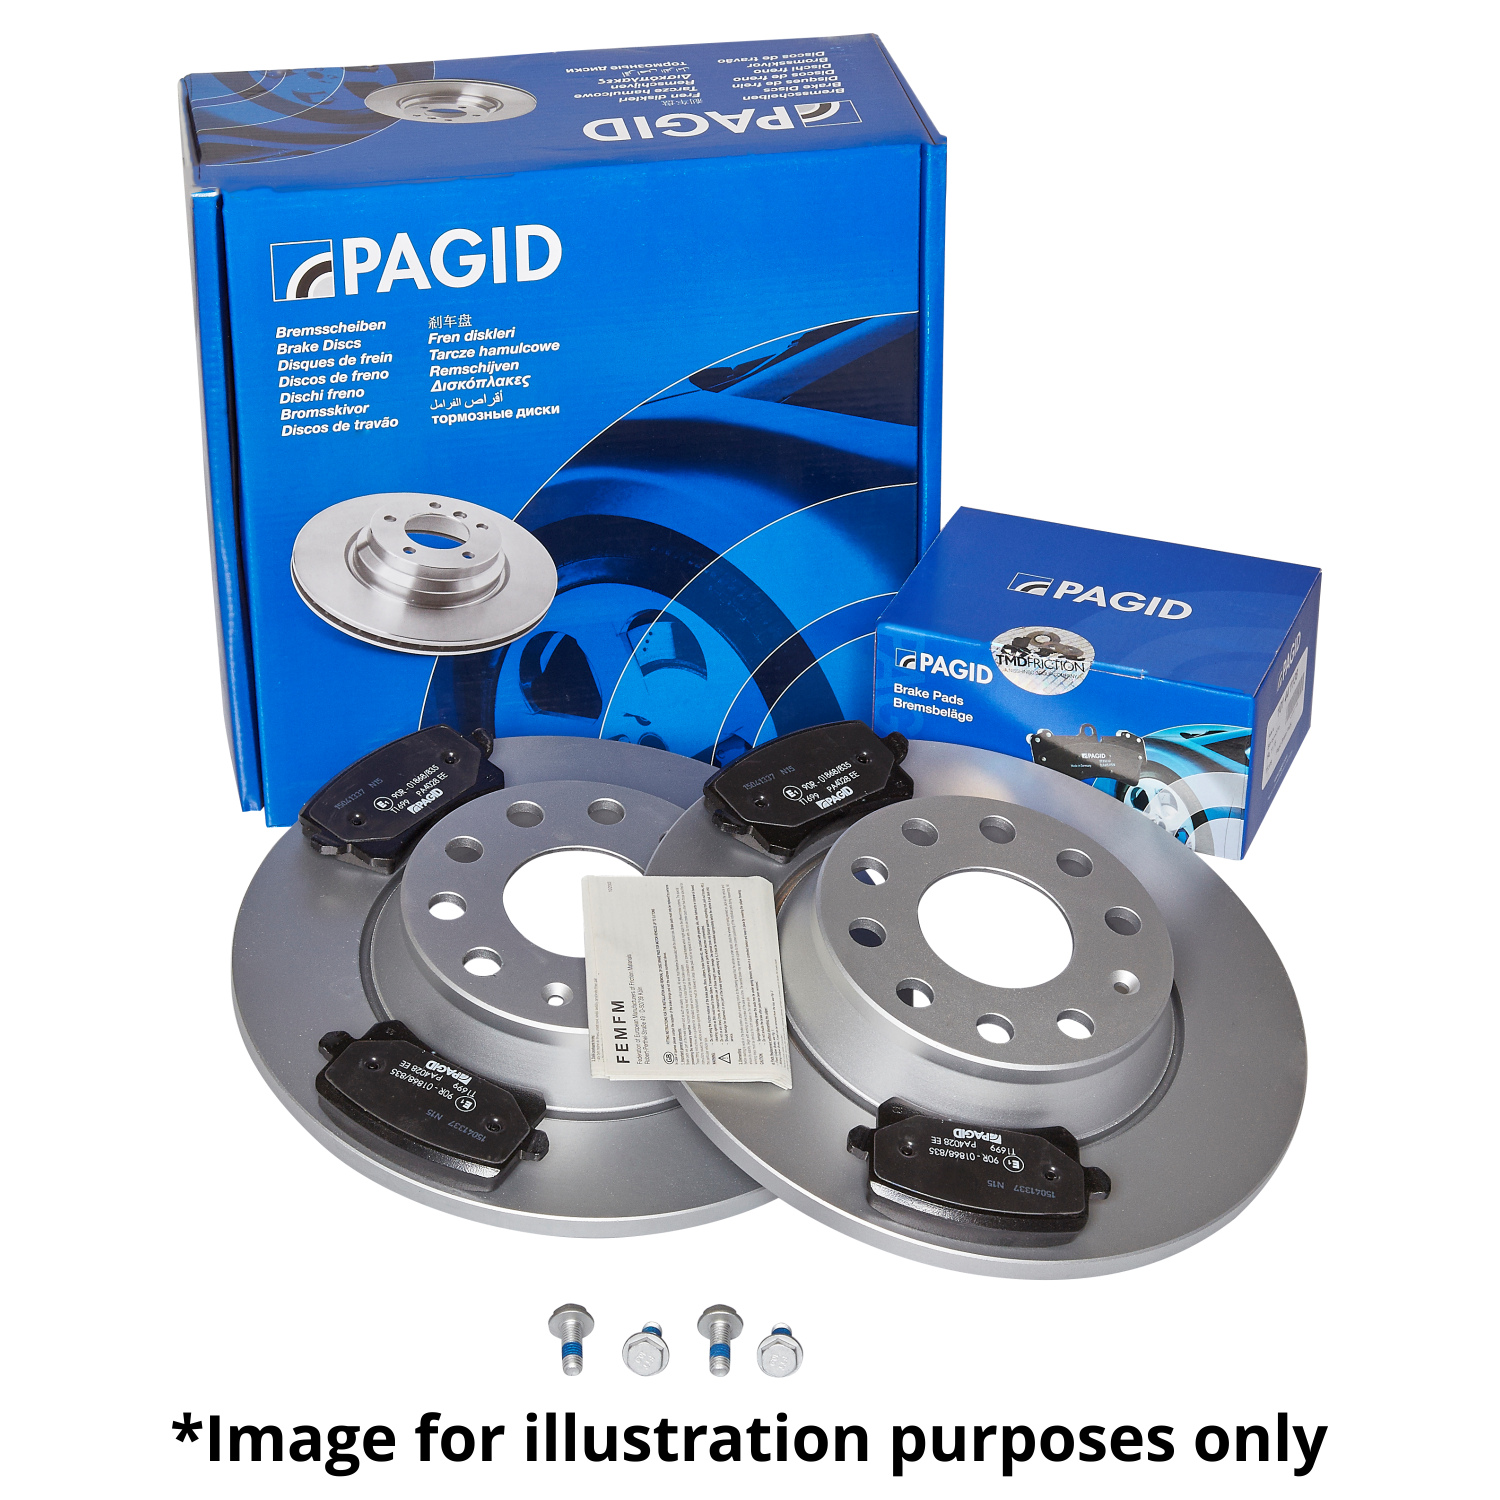 PAGID REAR AXLE EXTERNALLY VENTED BRAKE DISCS 54393 Ø 305 mm BRAKE KIT BRAKES